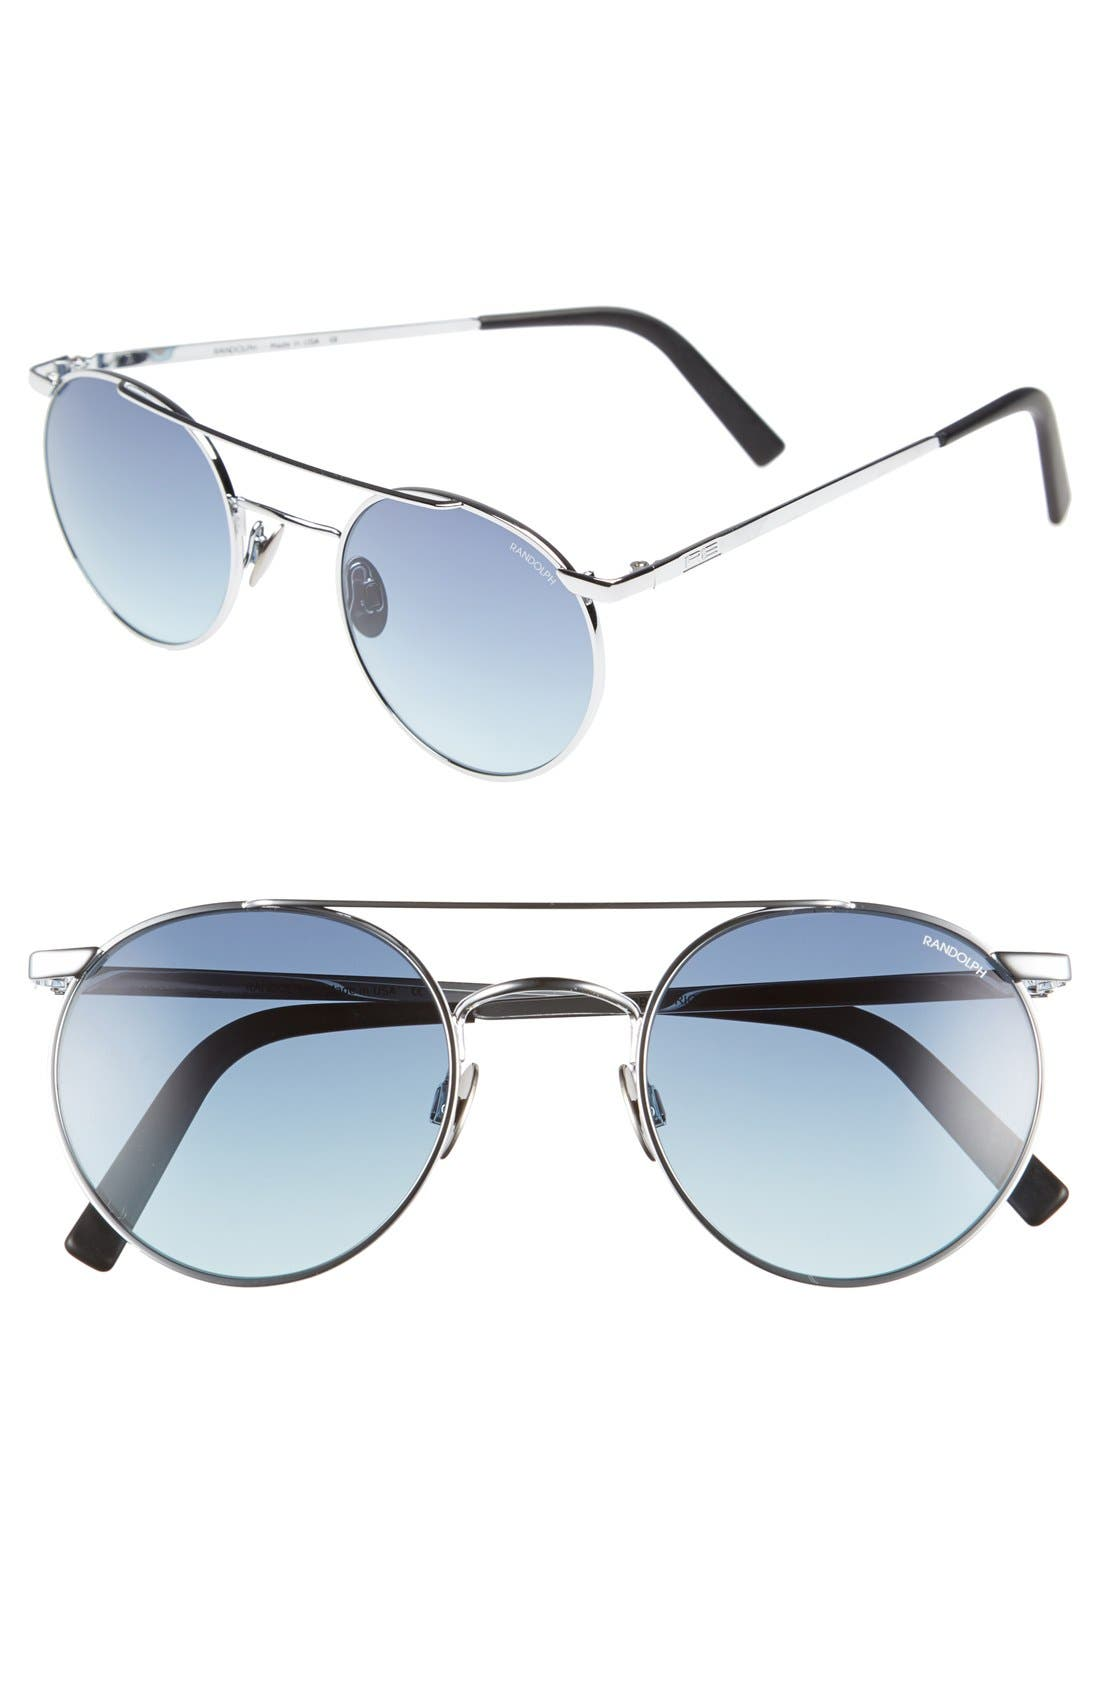 RANDOLPH ENGINEERING Shadow Retro Sunglasses